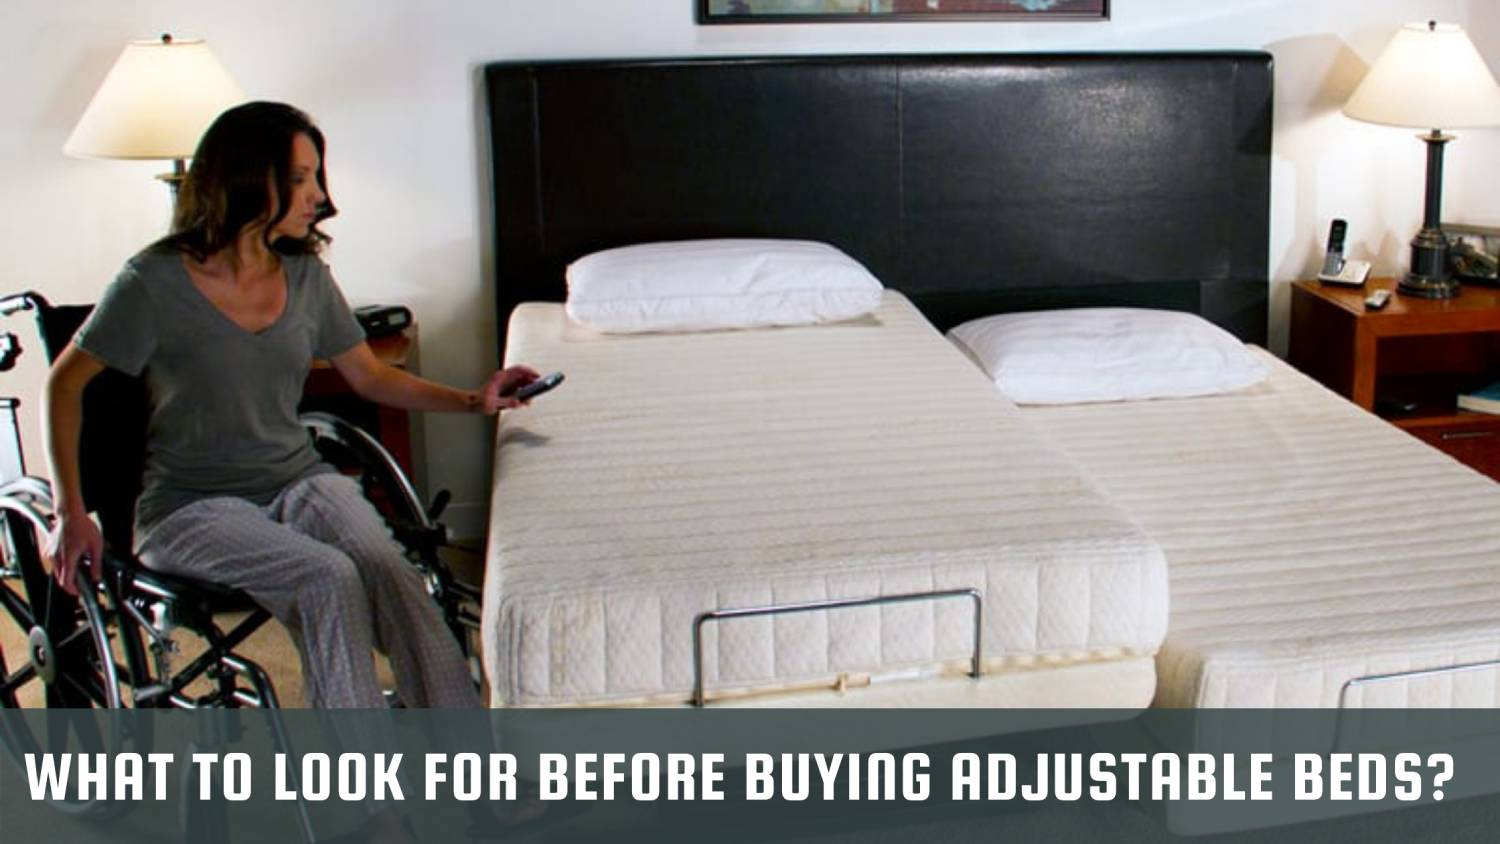 What To Look For Before Buying Adjustable beds